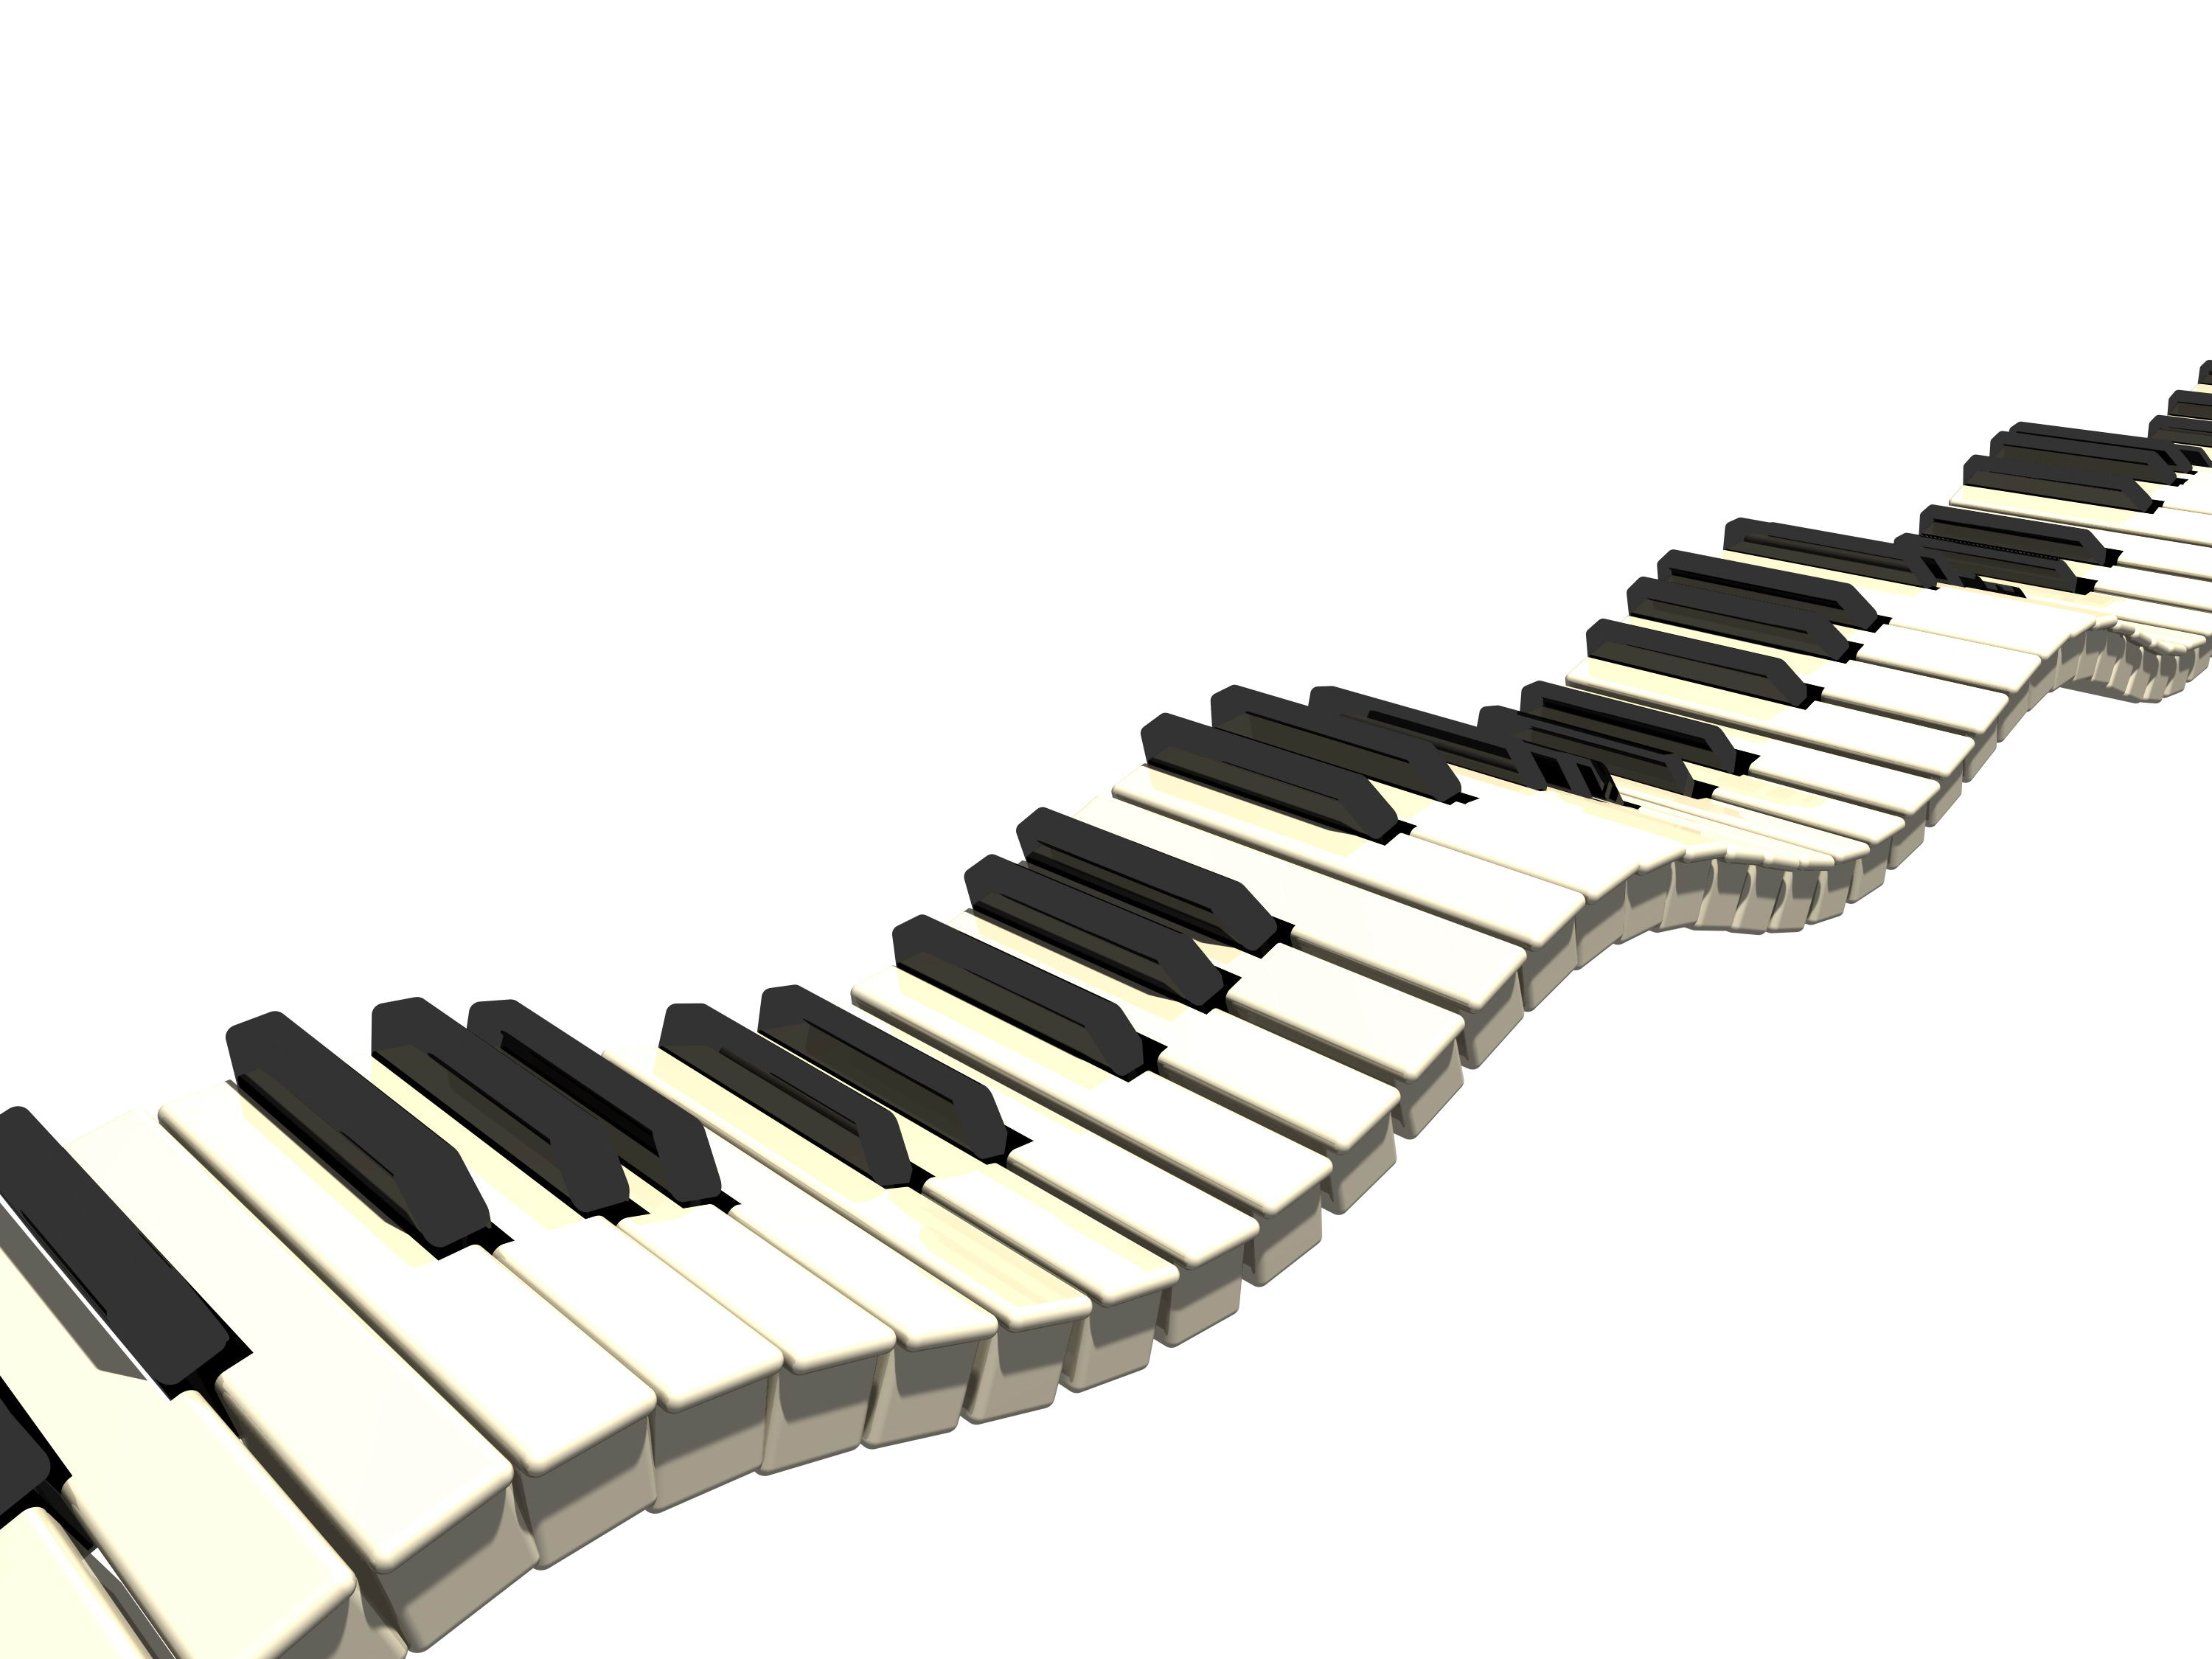 Piano Clipart Free Clip Art Images